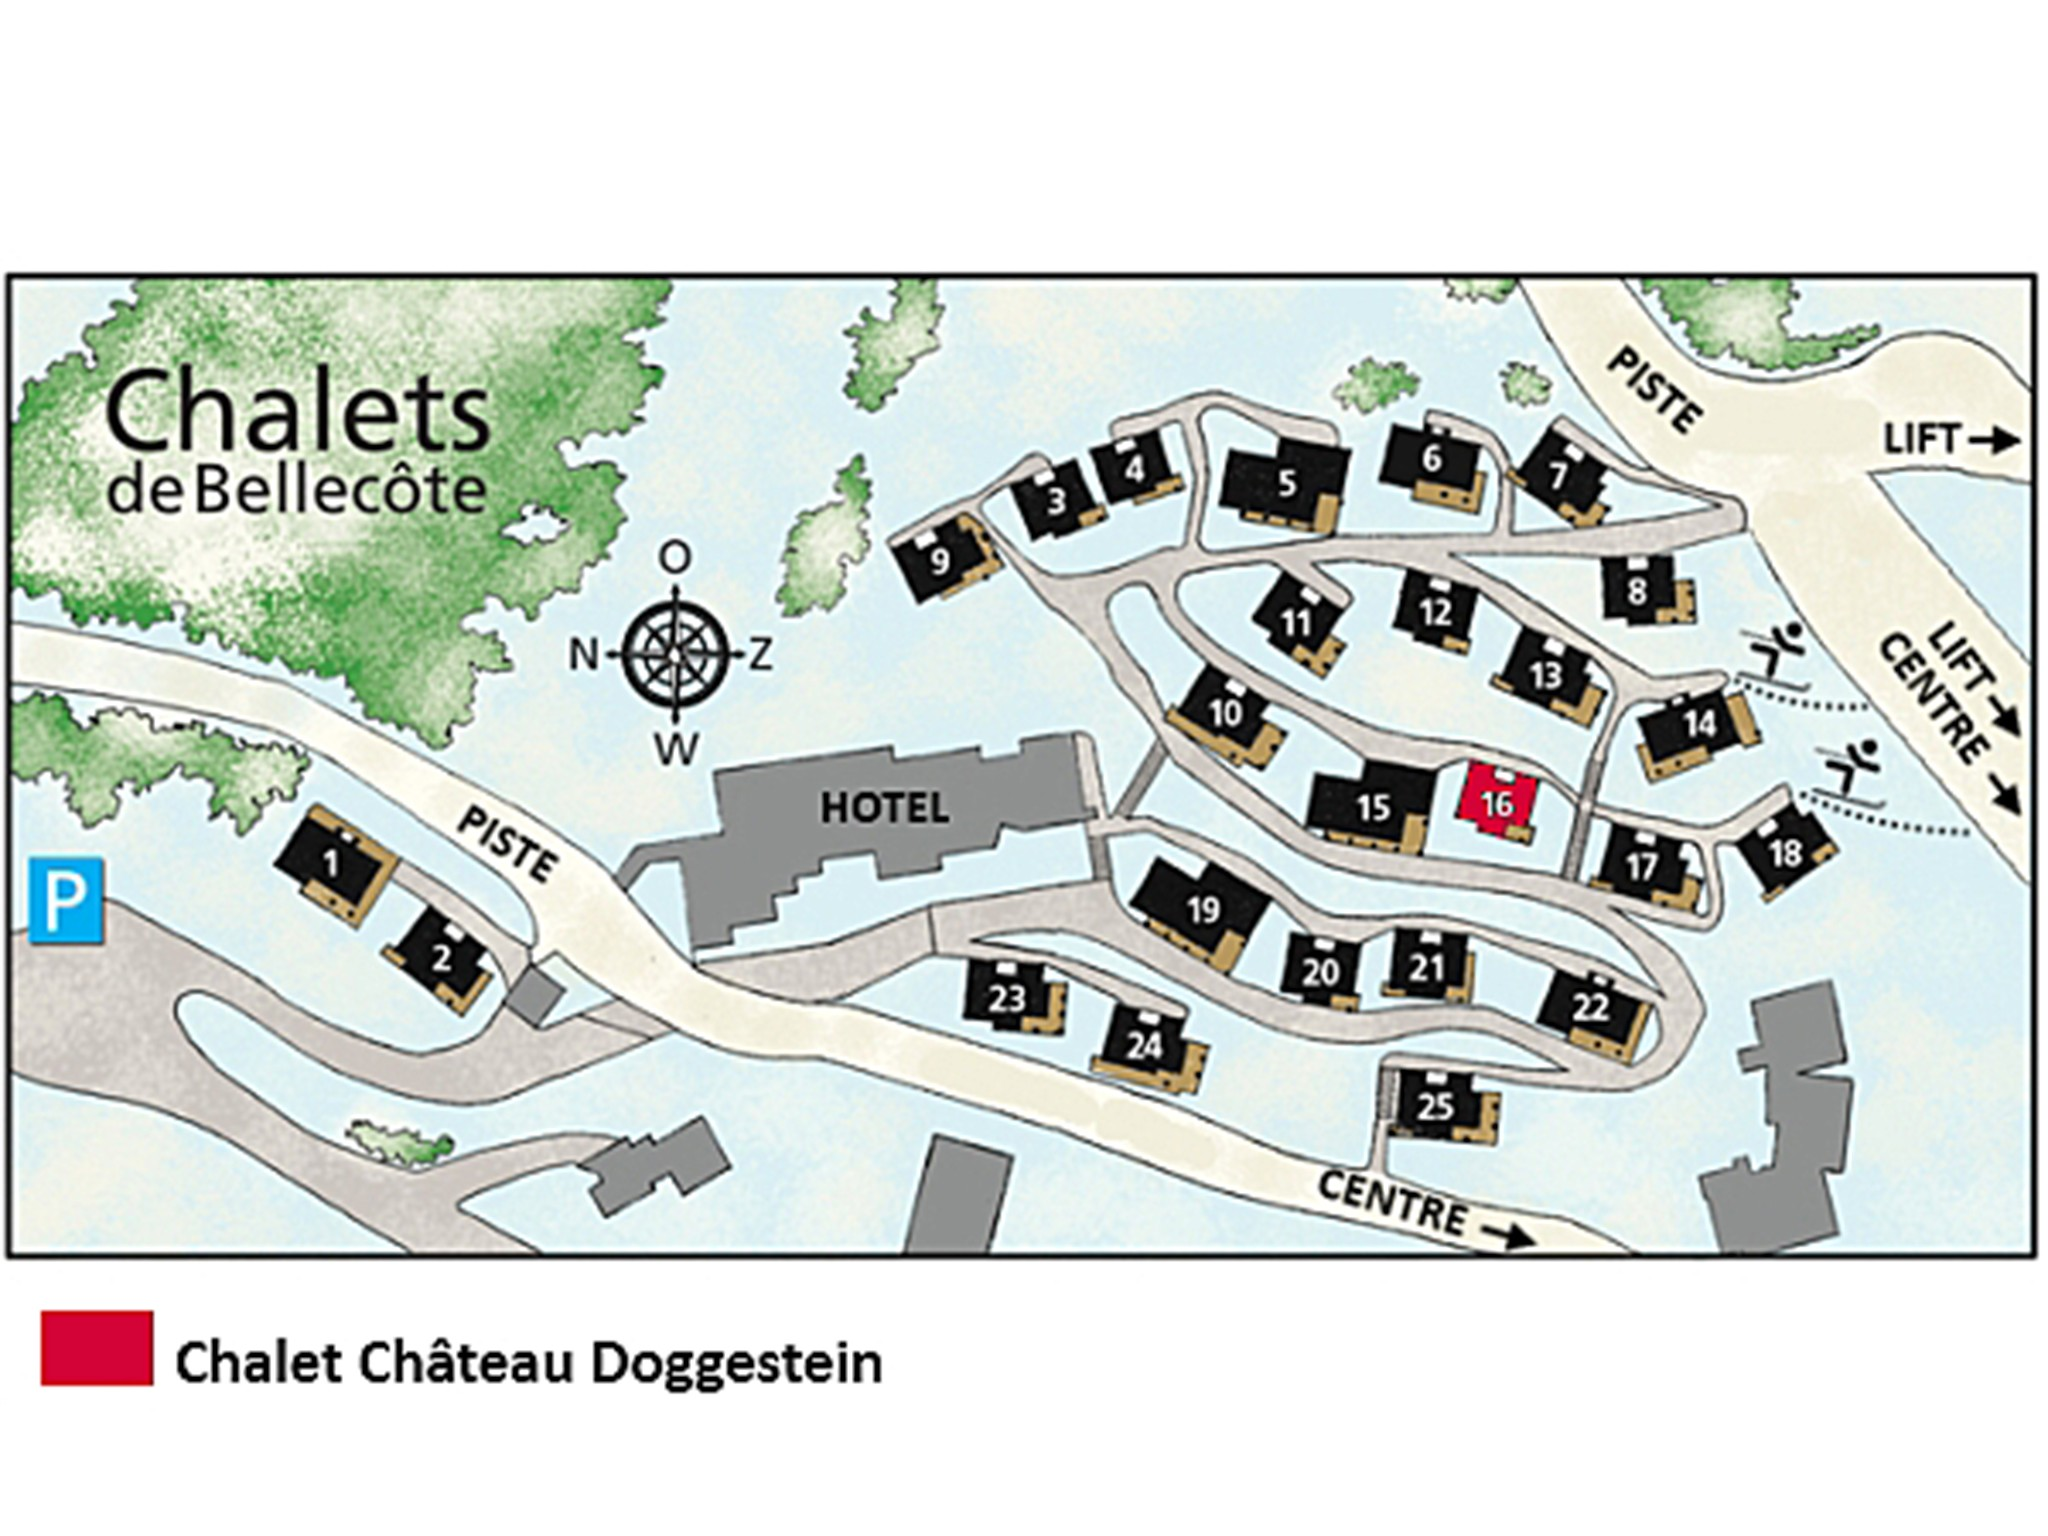 Chalet de Bellecôte Chateau Doggestein - Lageplan